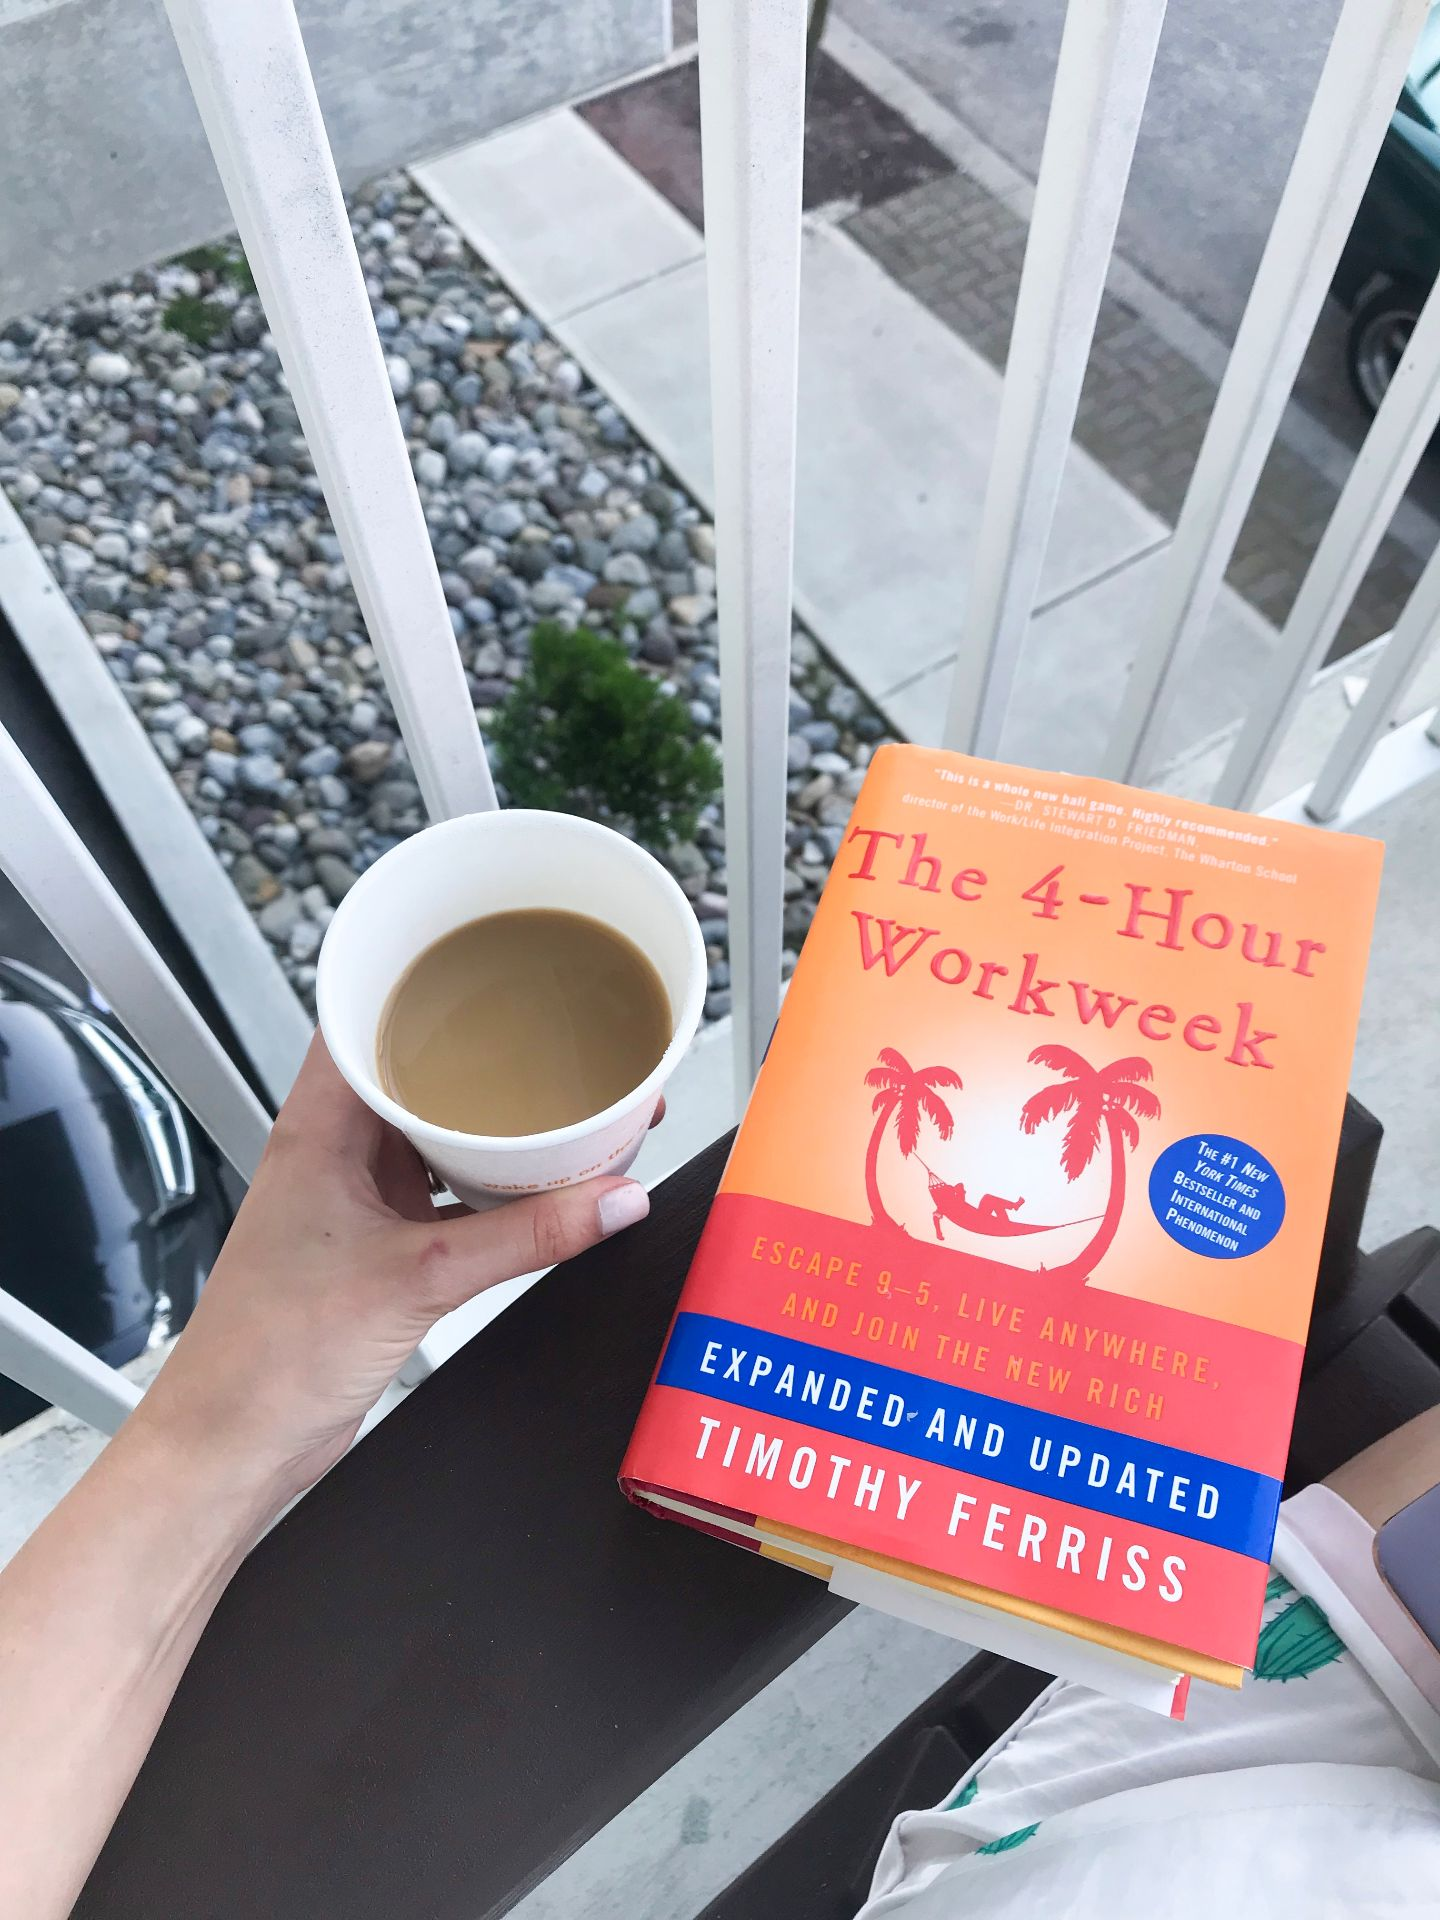 How to Dreamline your Life - Lessons from The 4 Hour Workweek by TIm Ferriss, from Philadelphia lifestyle blogger Erica of Coming Up Roses